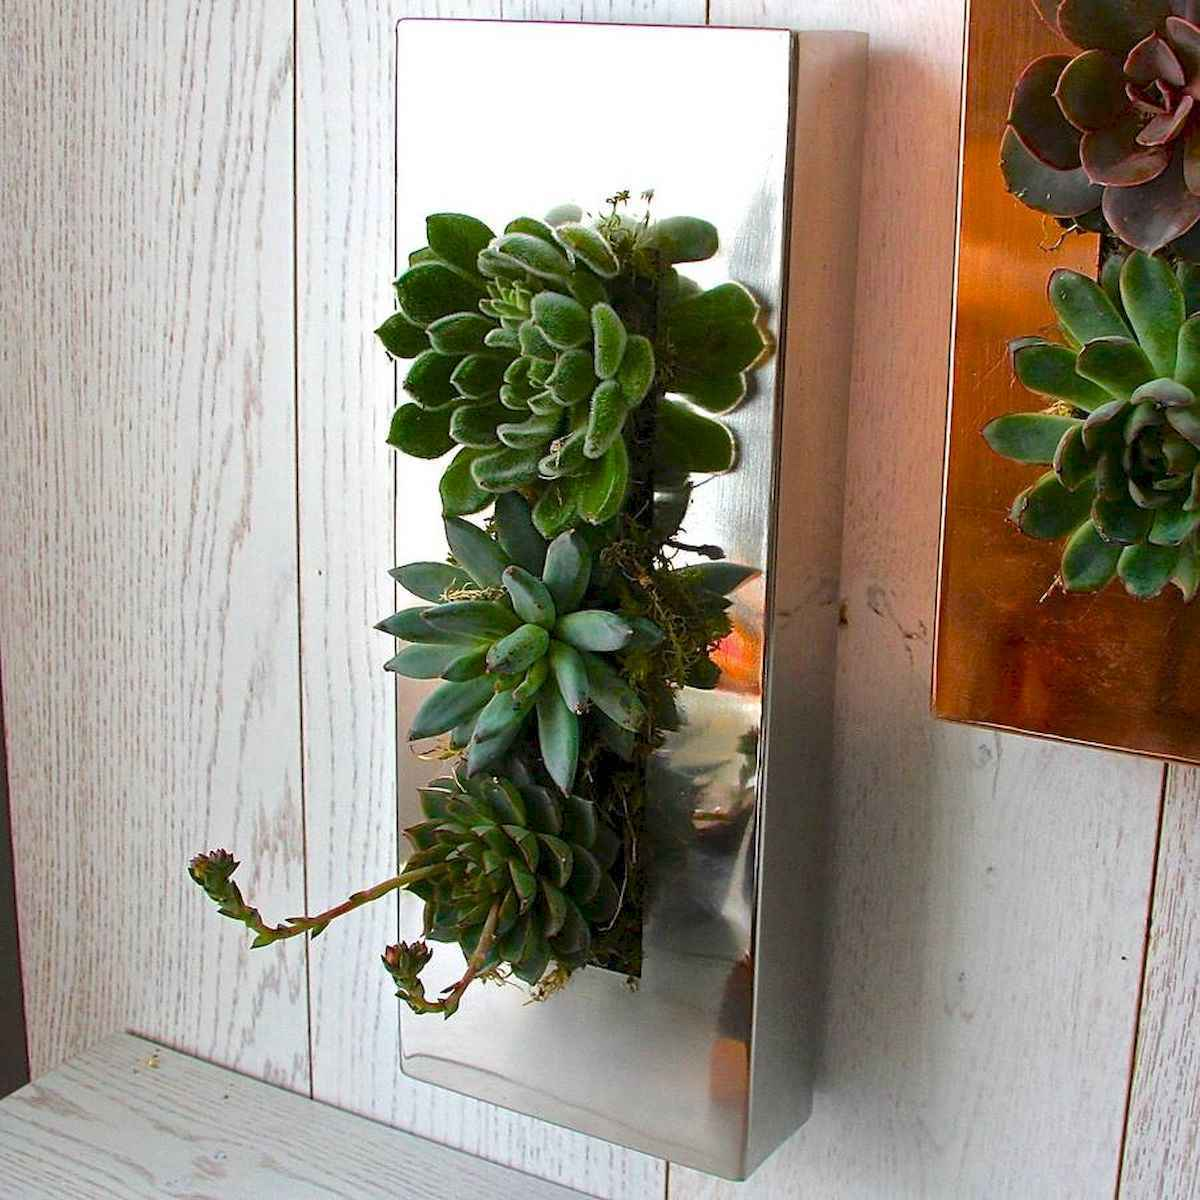 40 beautiful living wall planter garden ideas decorations and remodel (23)